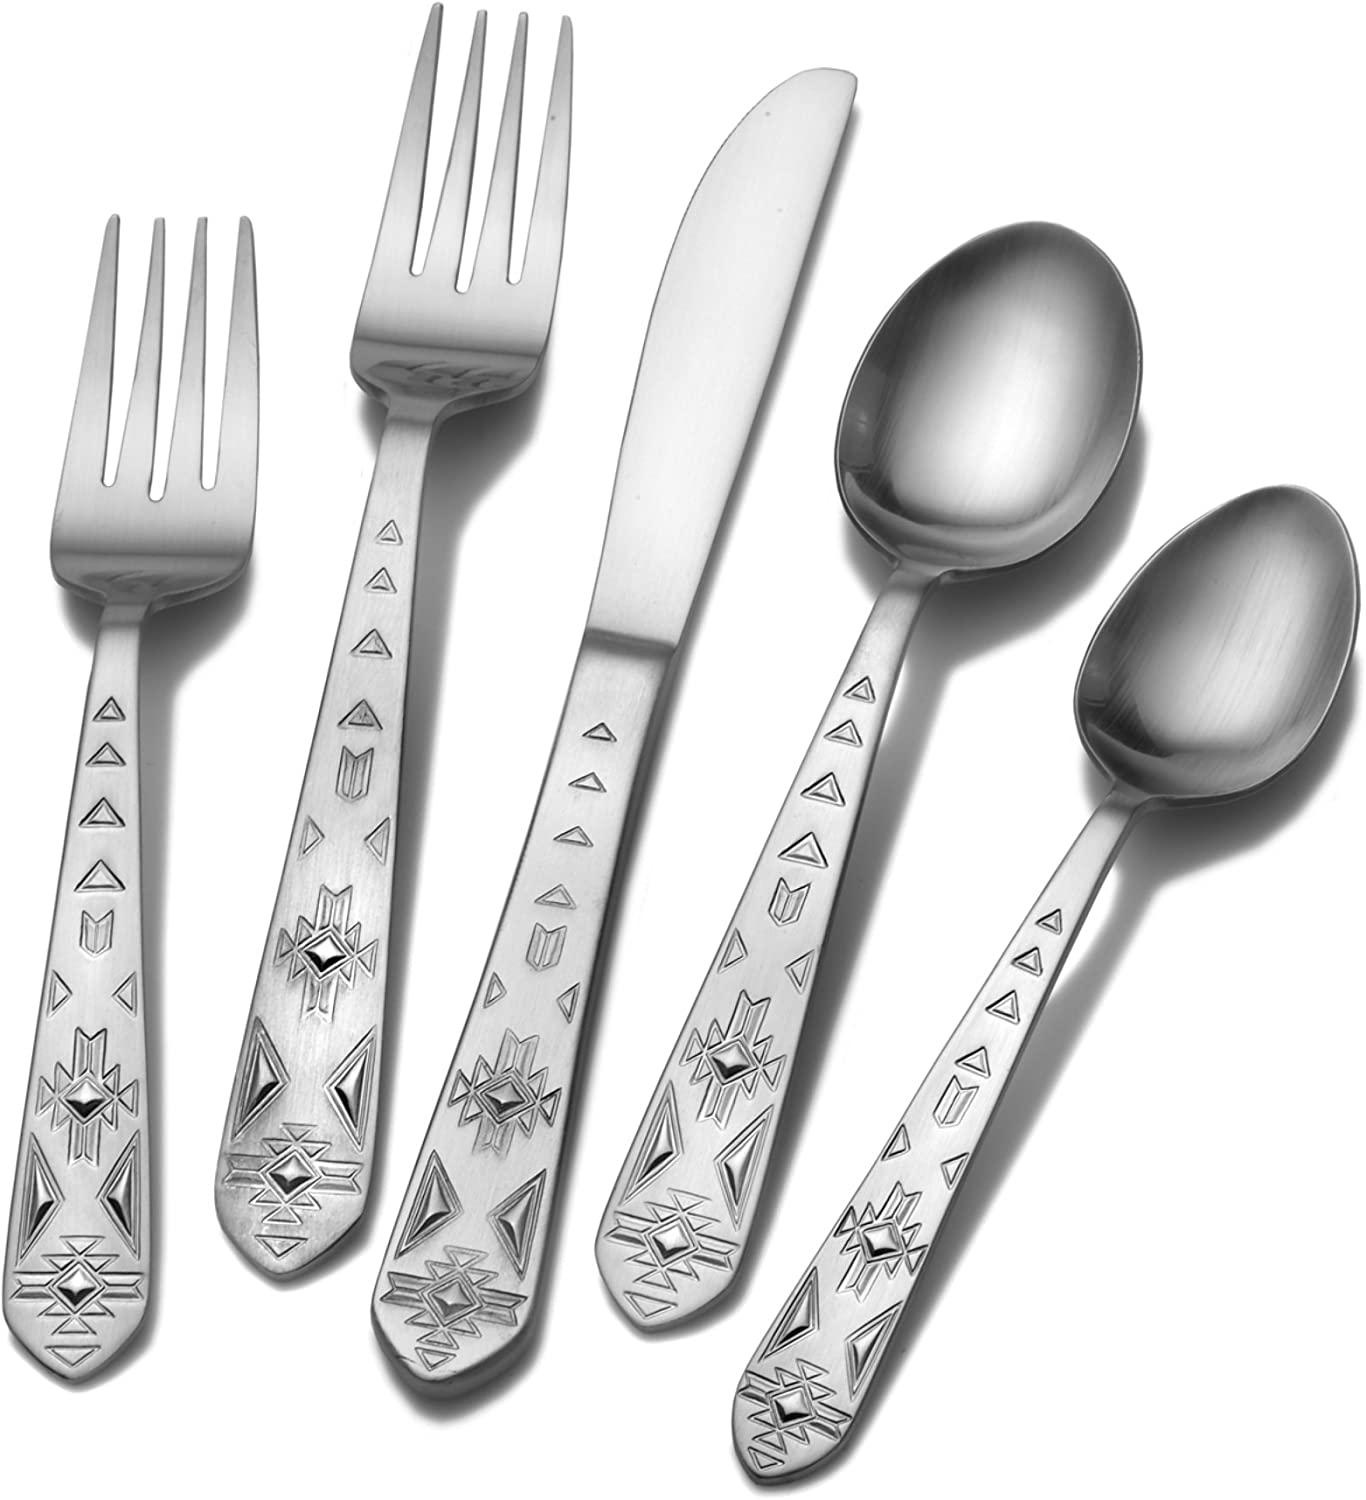 Towle Everyday 5112957 Pueblo 20-Piece Stainless Steel Flatware Set, Service for 4